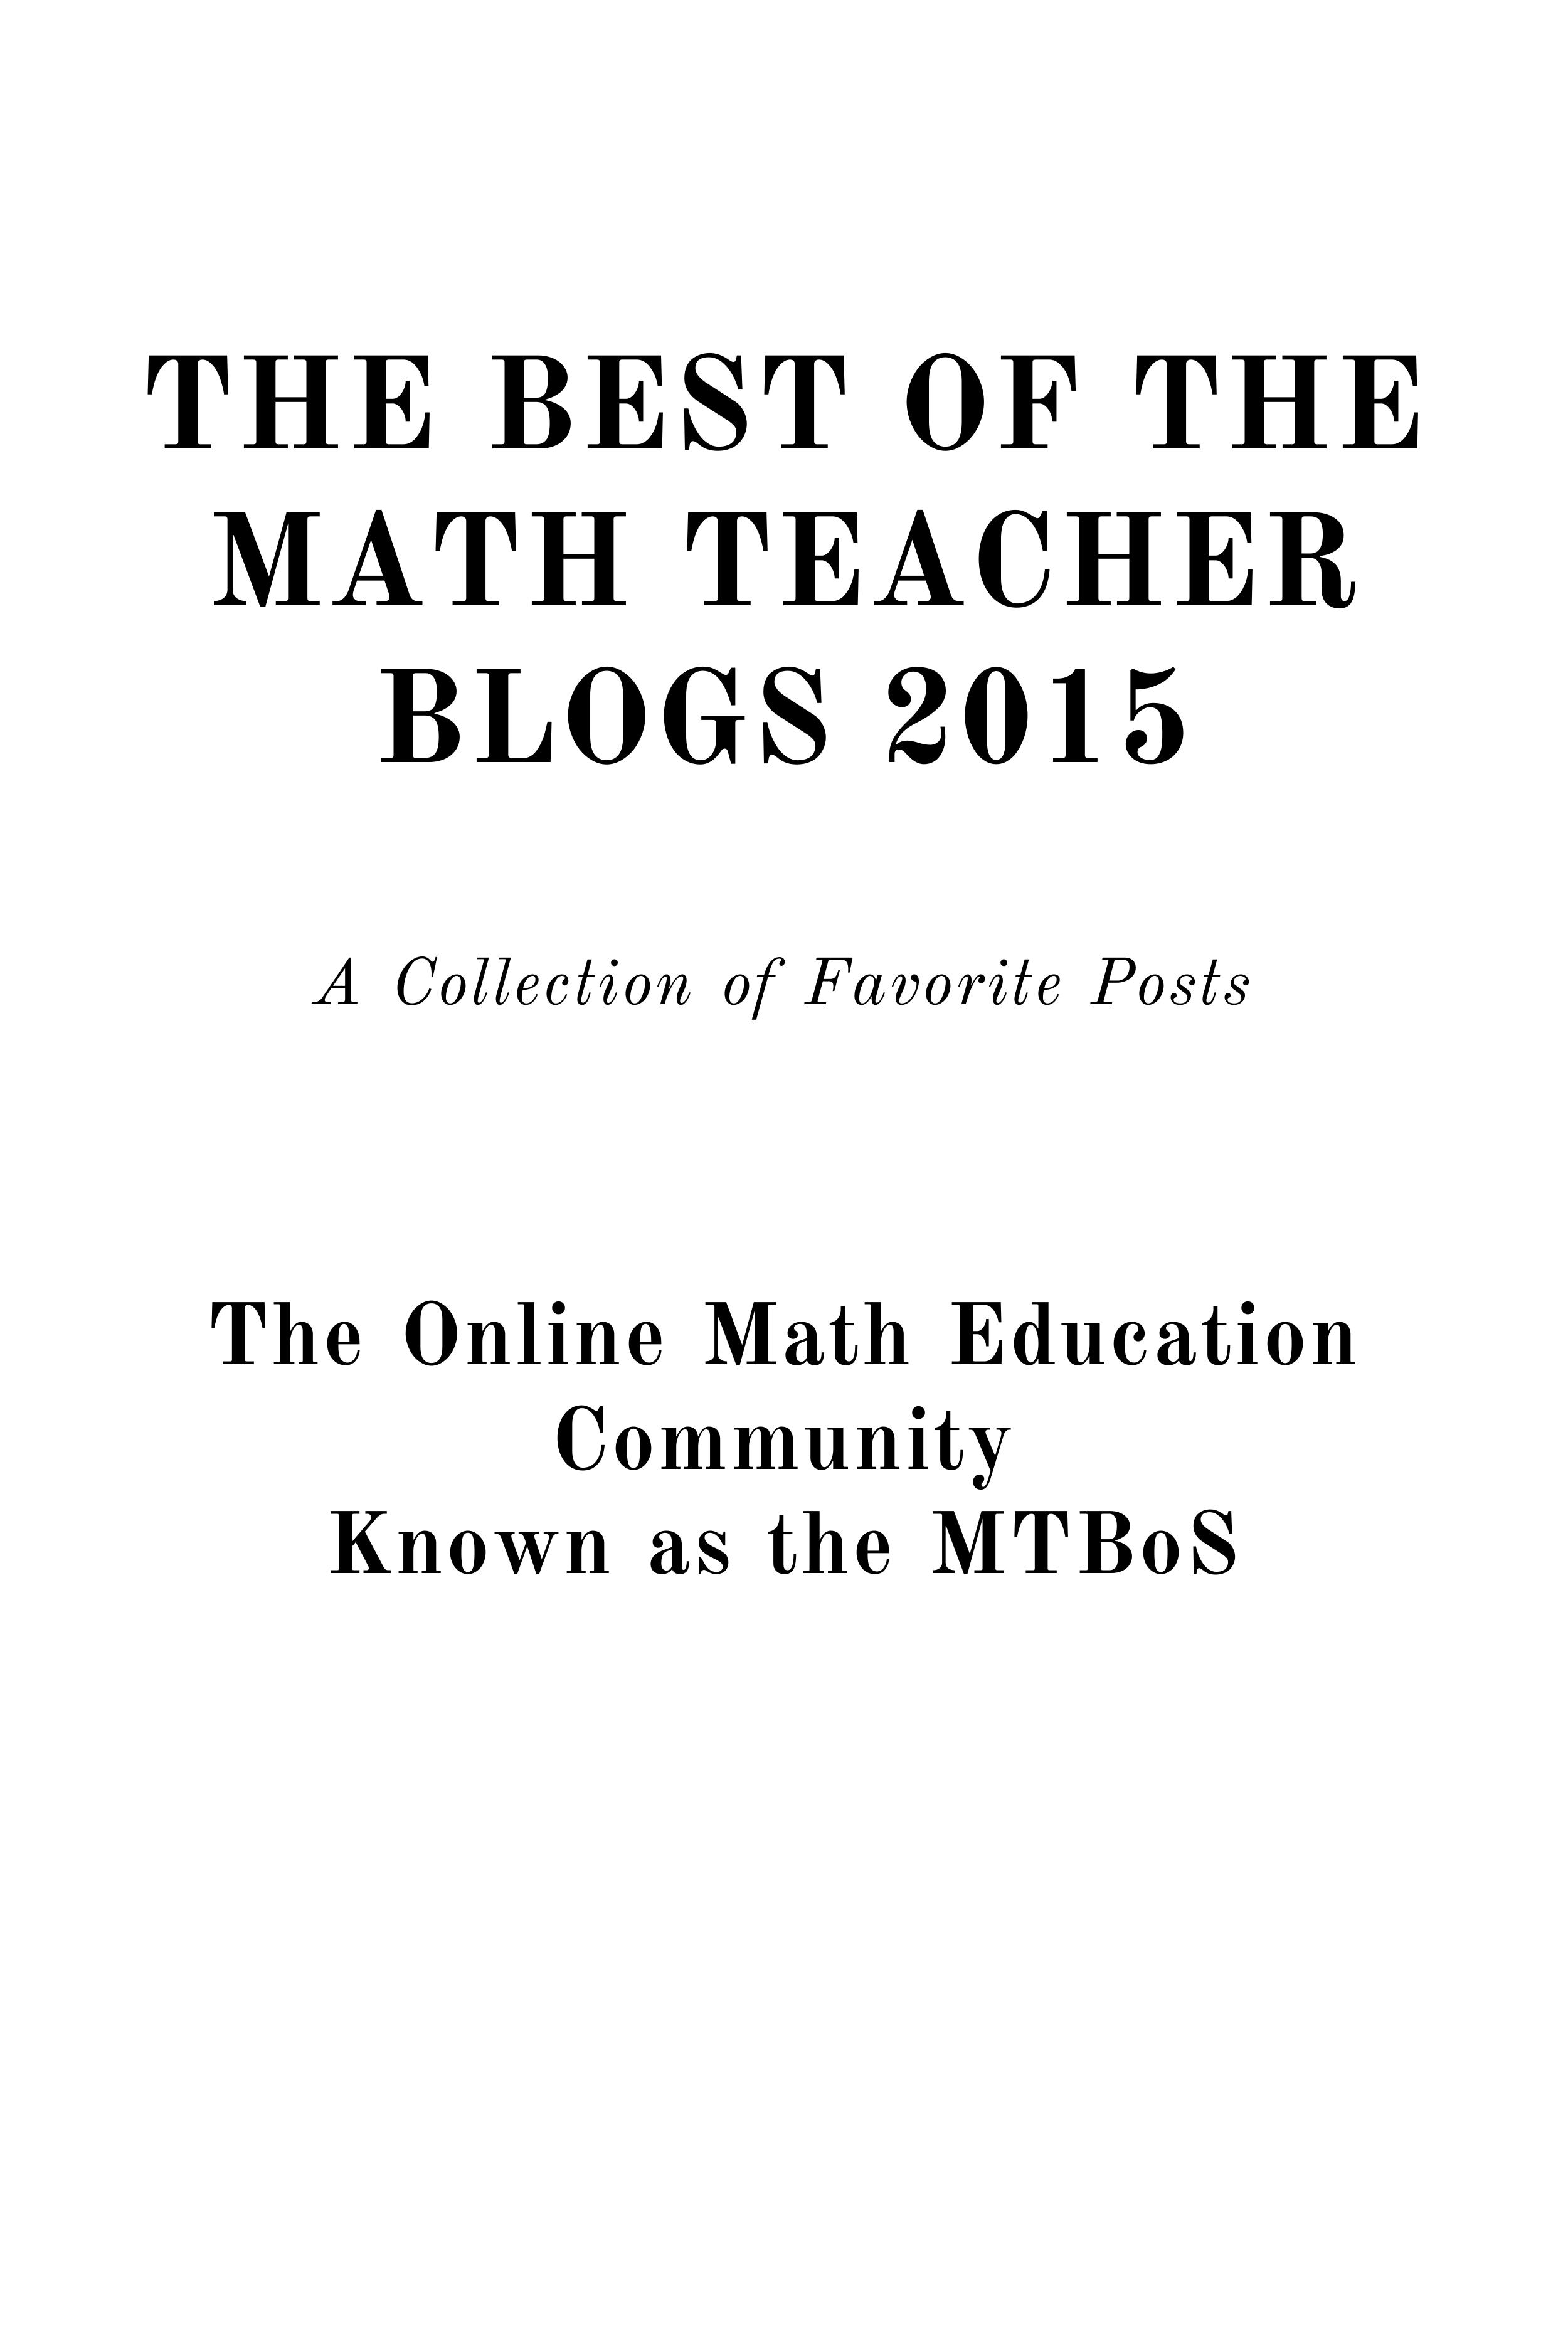 Cover image for The Best of the Math Teacher Blogs 2015